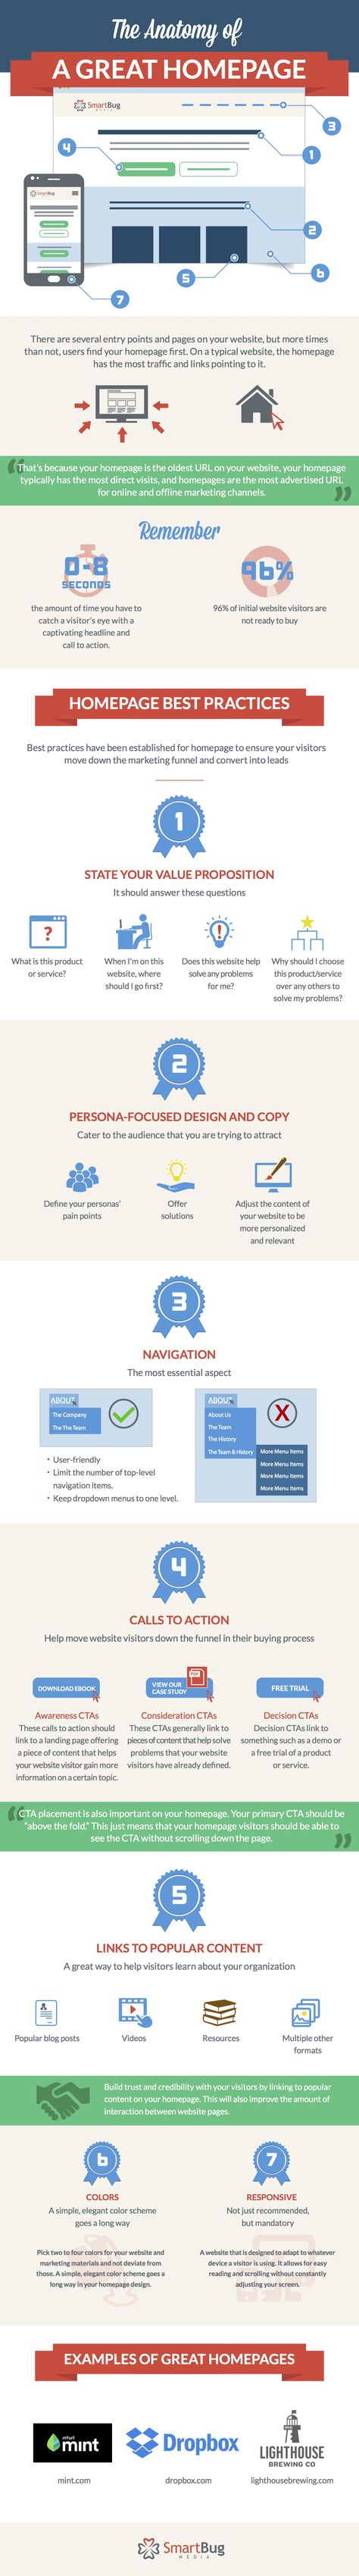 Website Redesign: The Anatomy of a Great Homepage